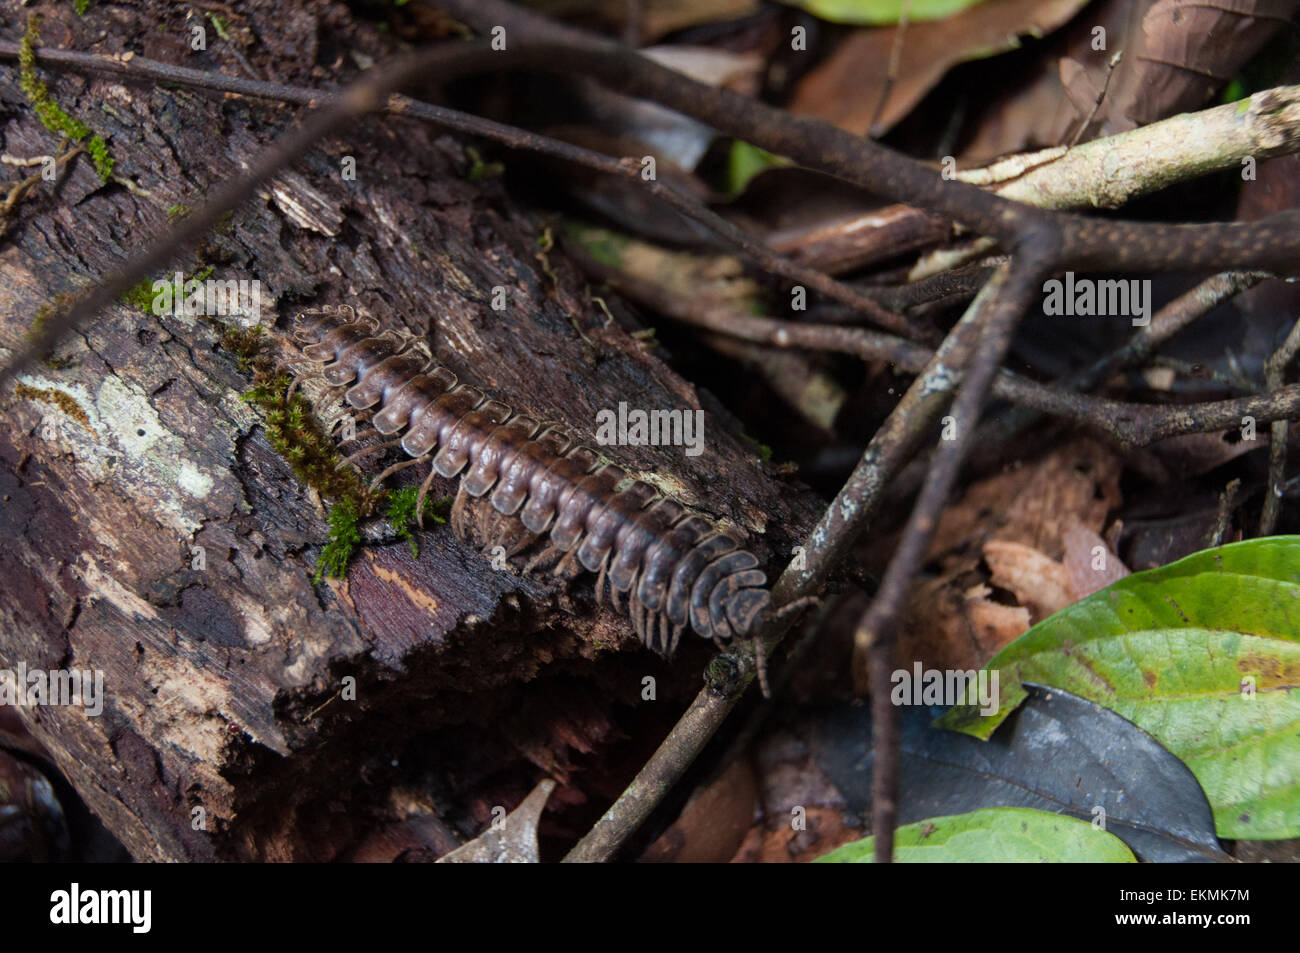 Harmless jungle centipede in Danum Valley Conservation, Borneo, Malaysia - Stock Image